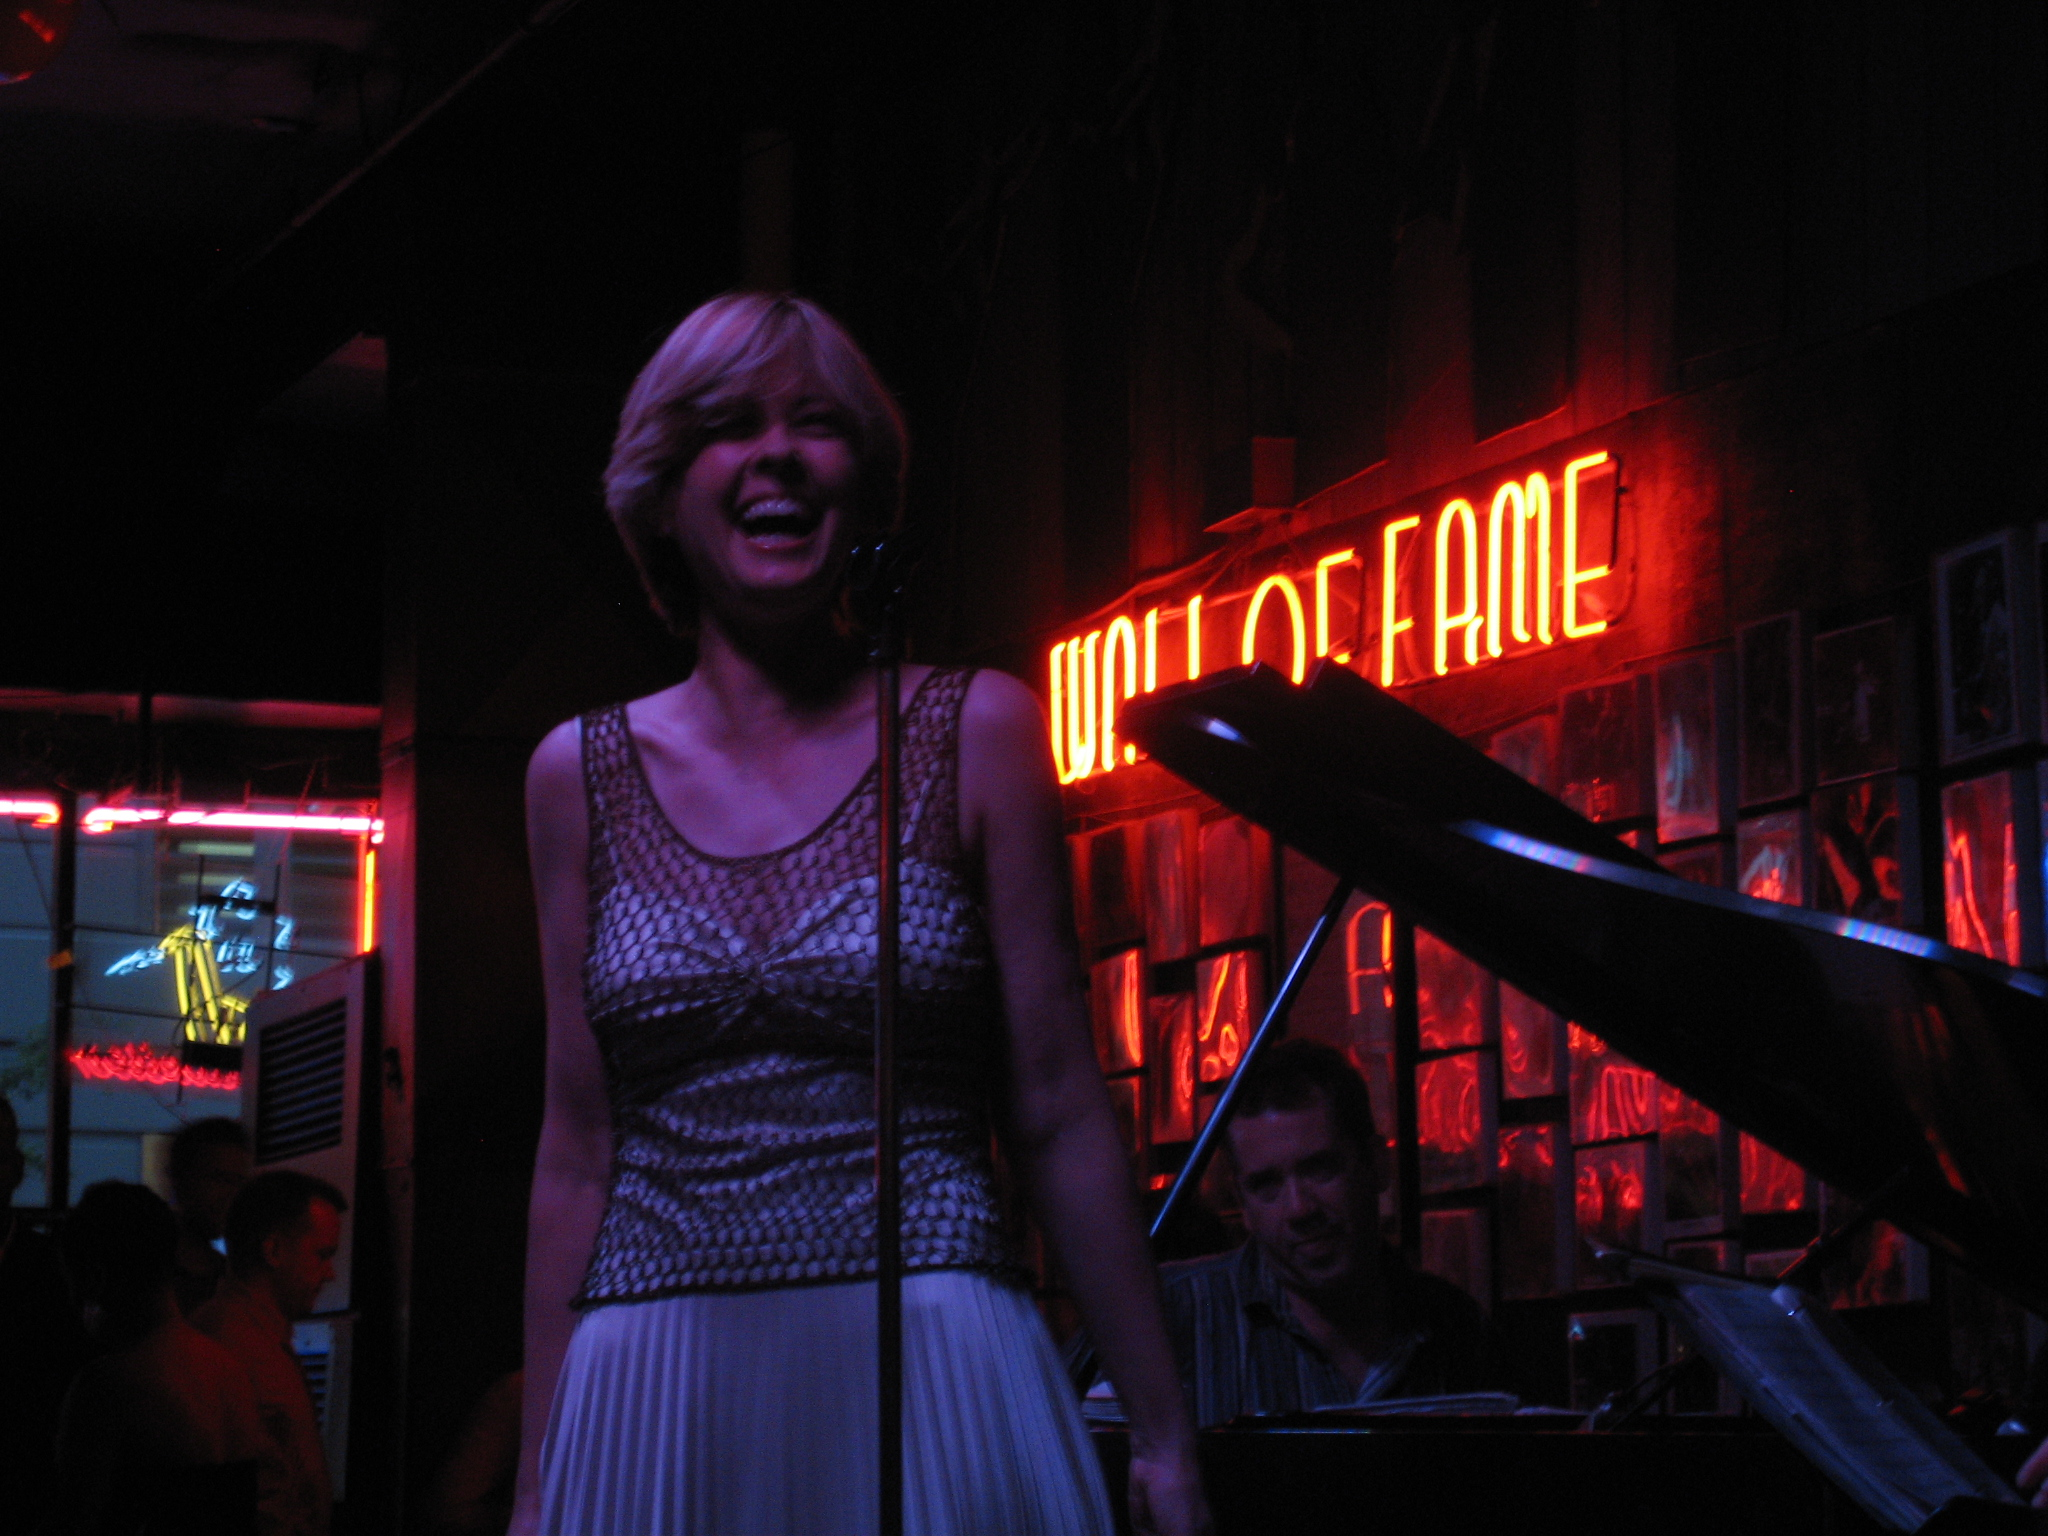 a woman with short hair on stage at Andy's Jazz Club in Chicago